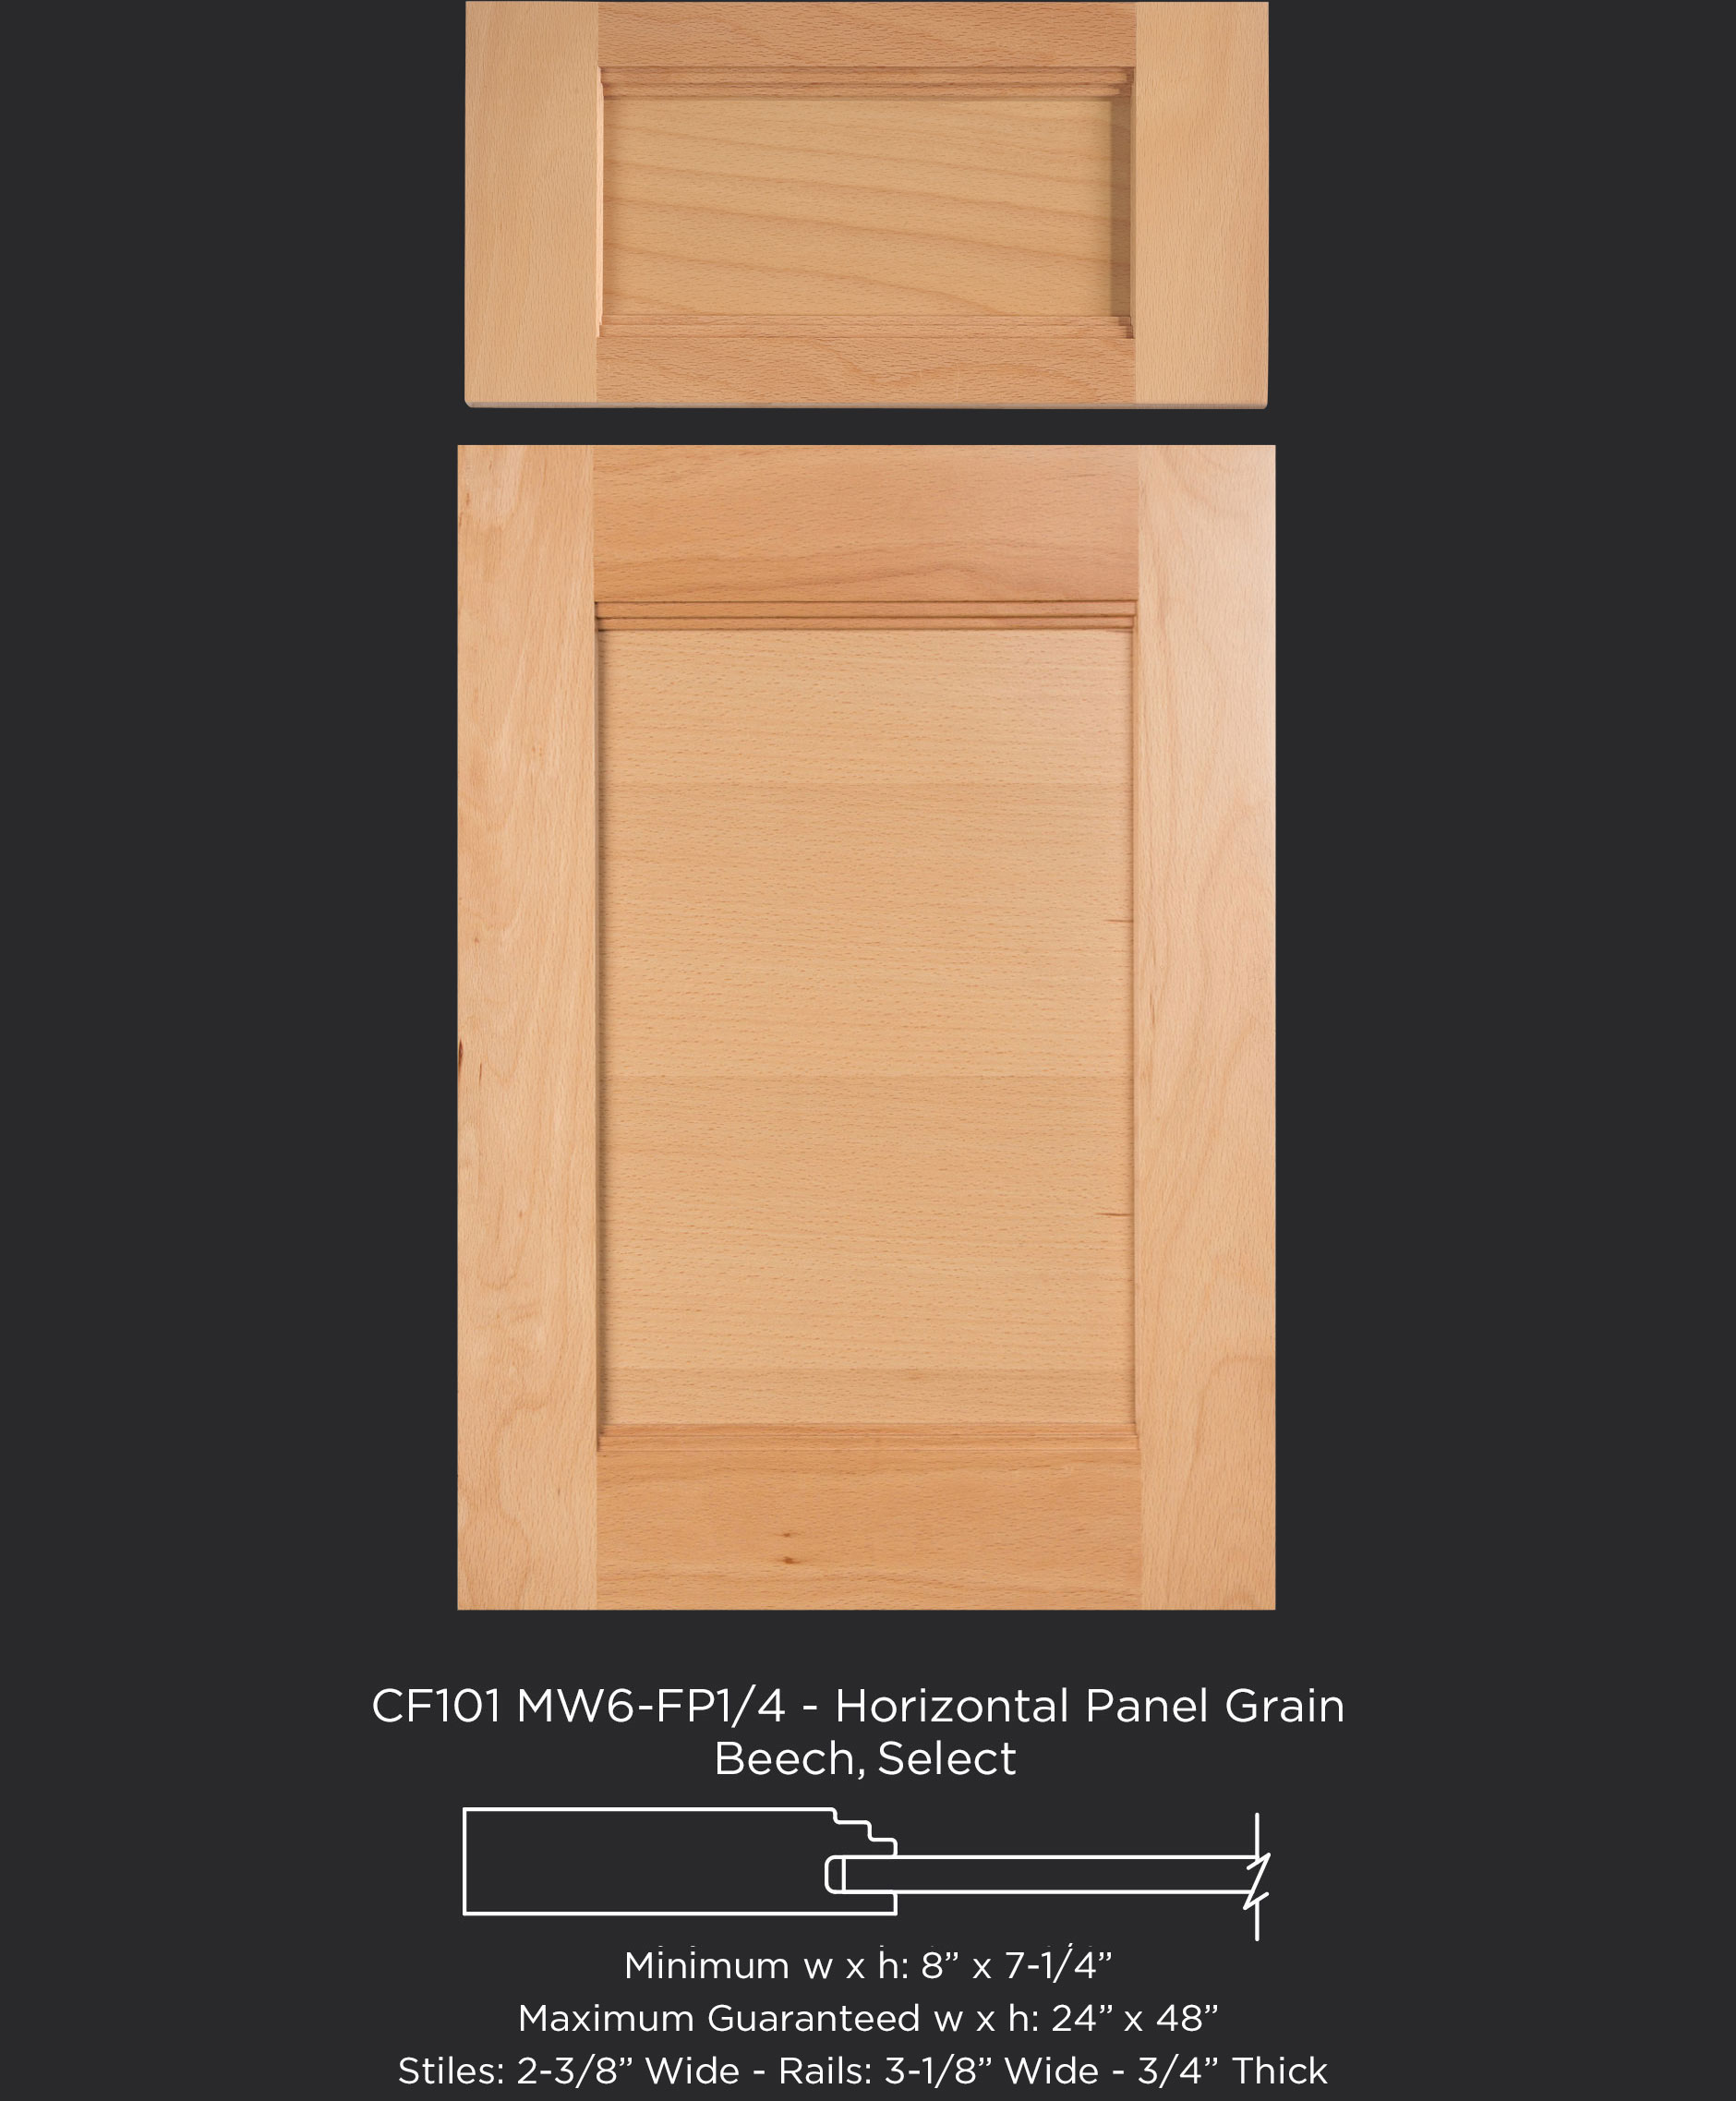 Combination Frame Cabinet Door CF101 MW6-FP1/4 with horizontal panel grain in Beech, Select with 5 piece drawer front